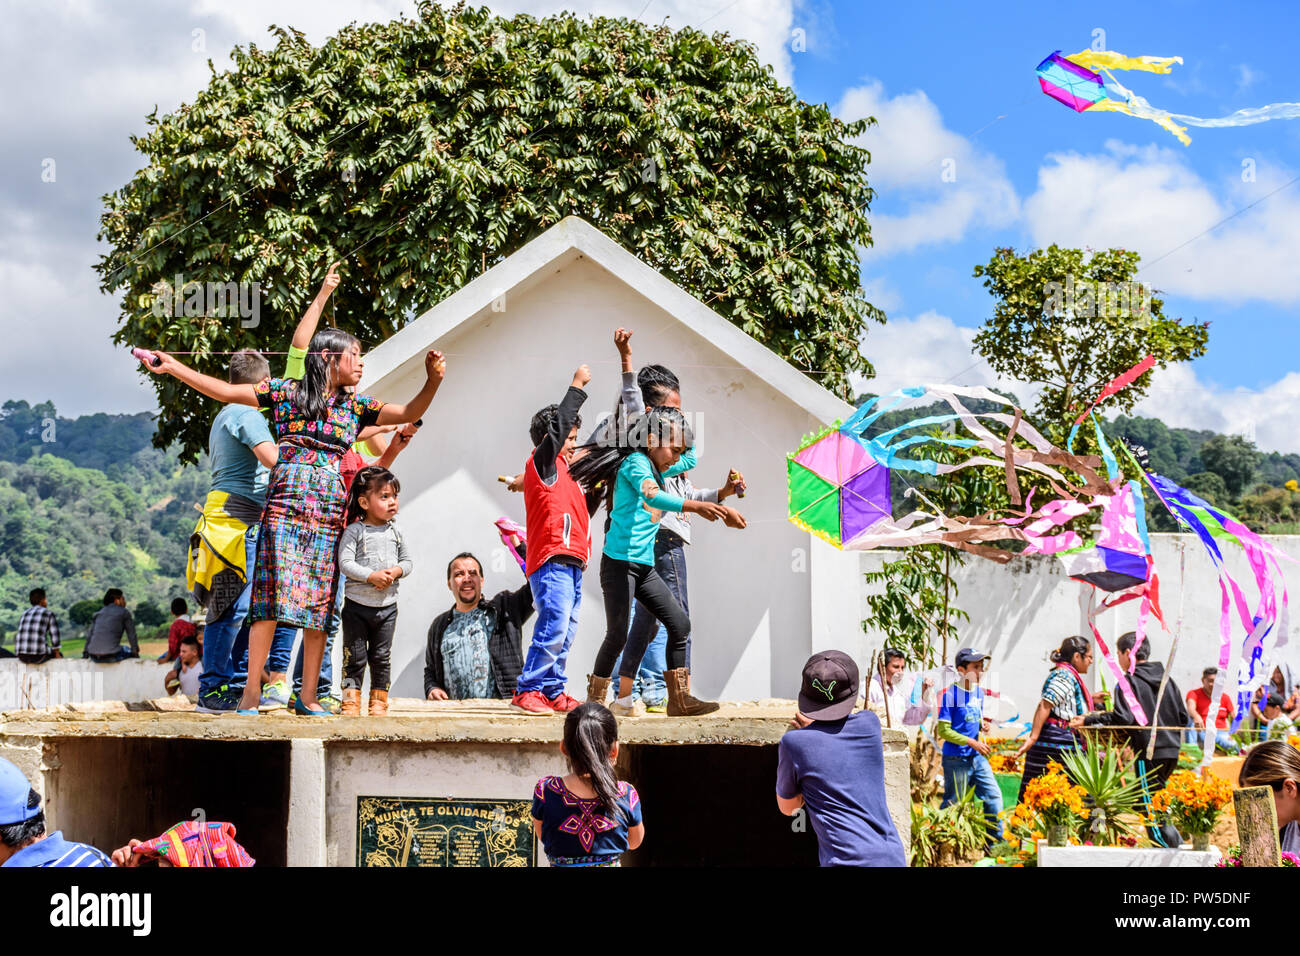 Santiago Sacatepequez, Guatemala - November 1, 2017: Flying kites honoring spirits of the dead in cemetery on All Saints Day. - Stock Image